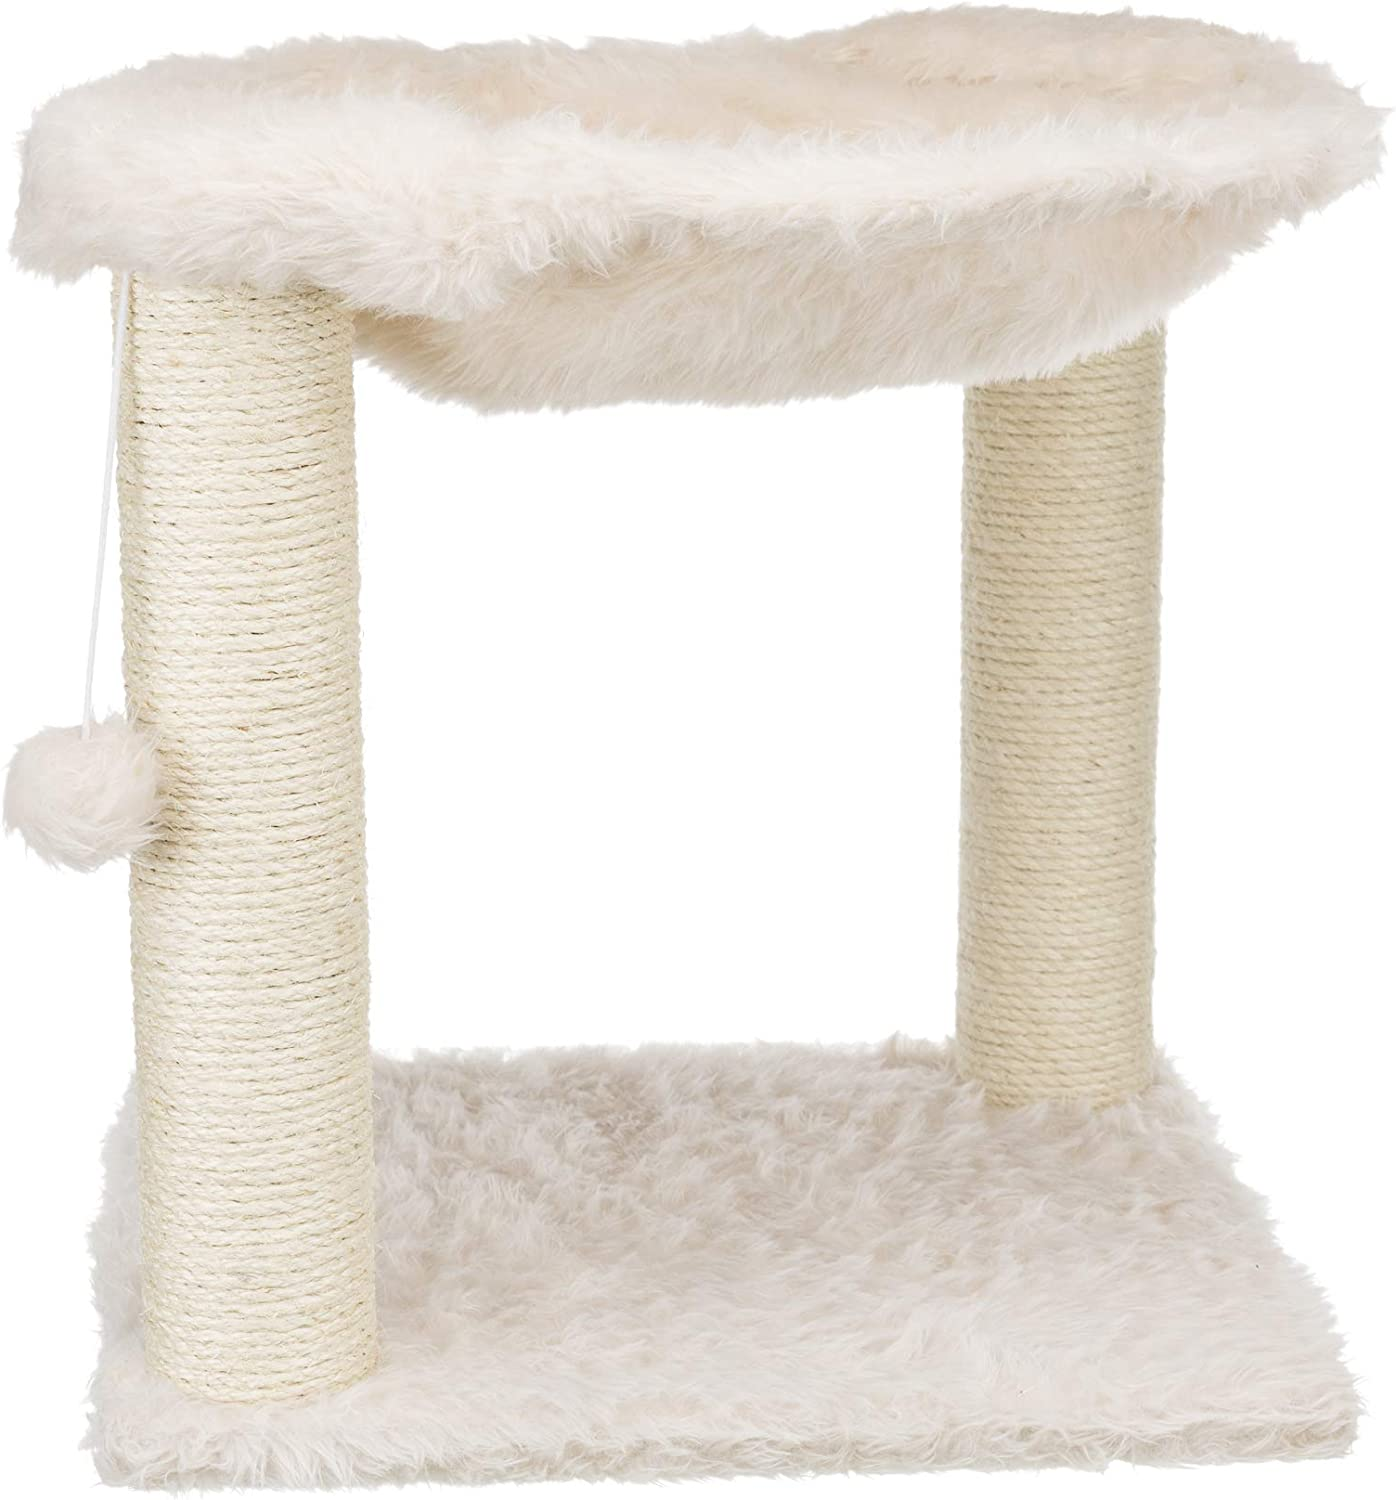 Cream Trixie Baza Scratching Post with Hammock XXL Dangling Pom-Pom 44552 for Large Cats